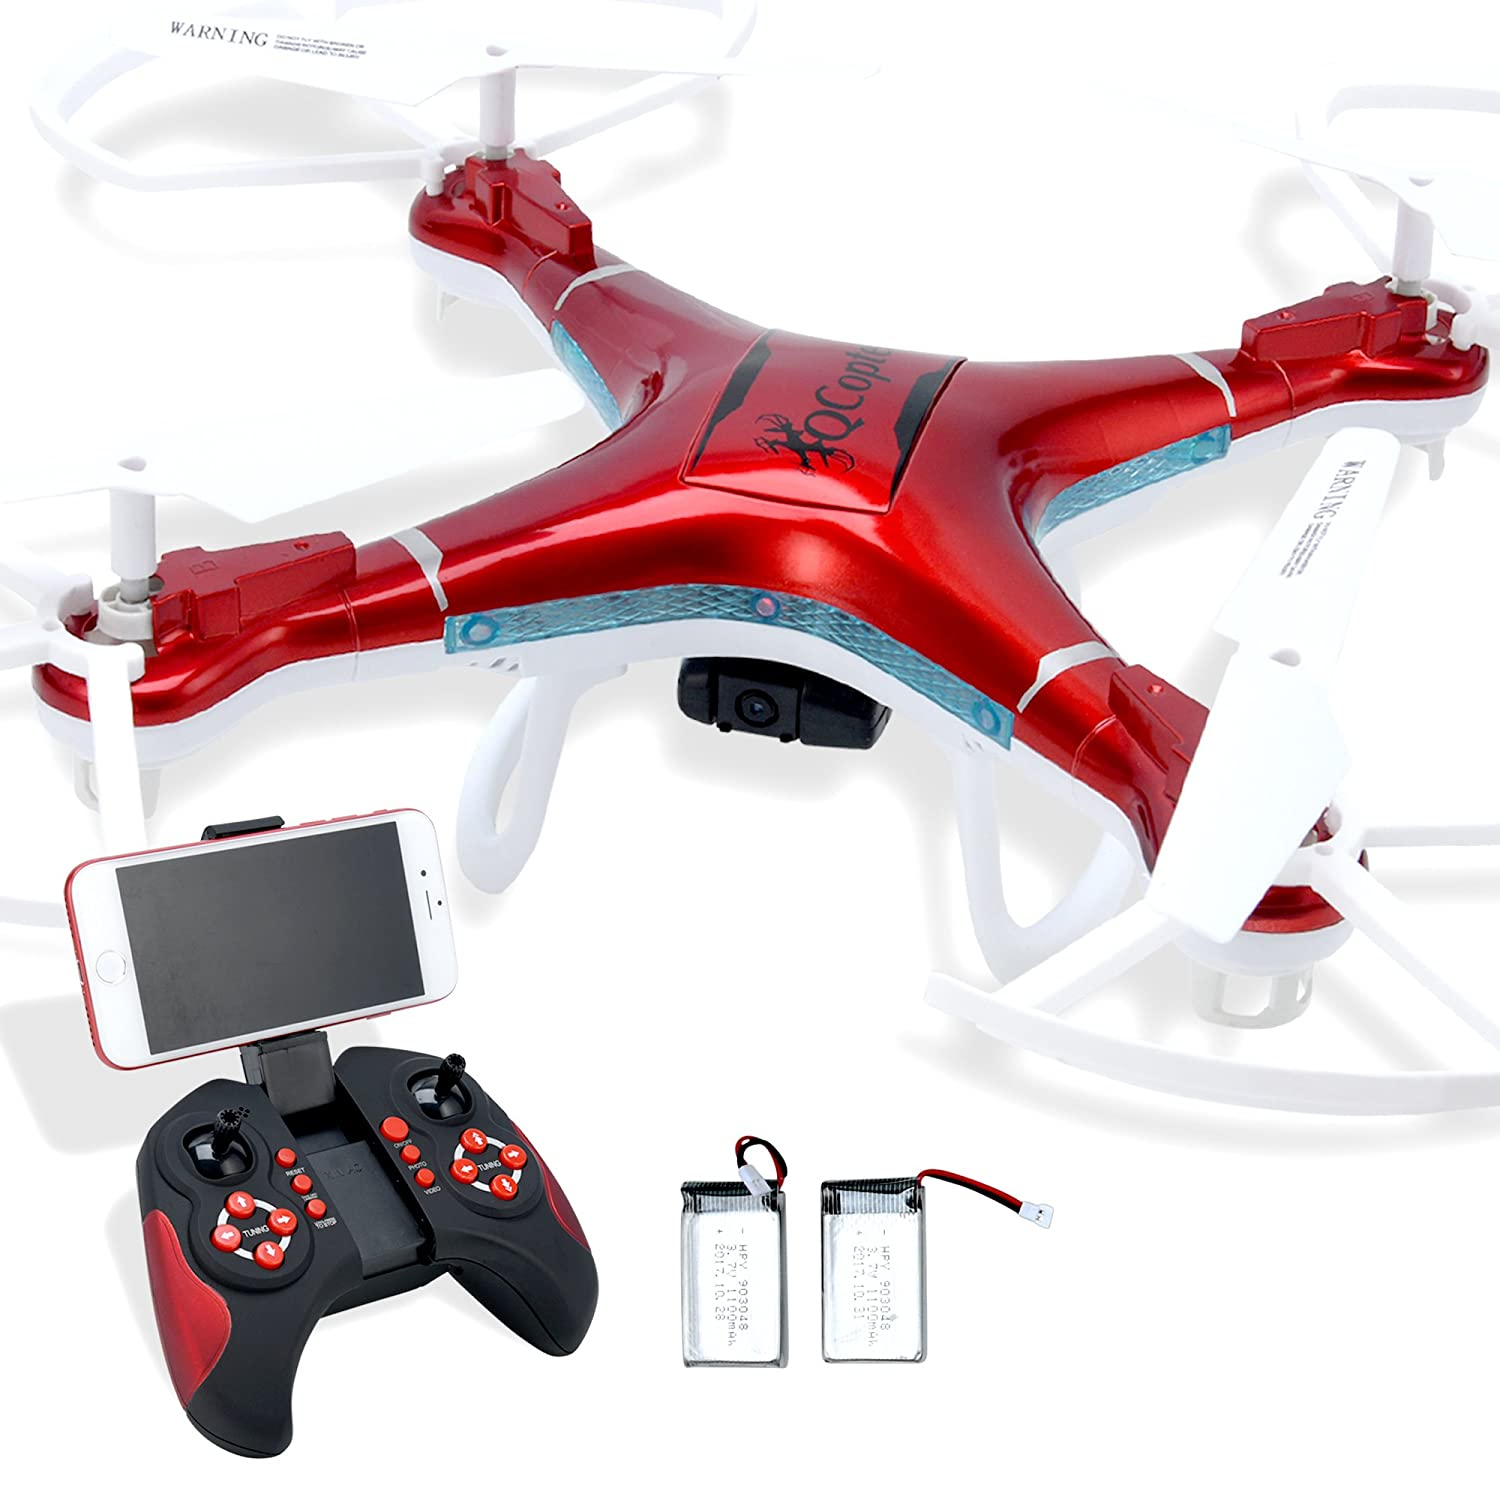 The Best Quadcopter Under $100 5